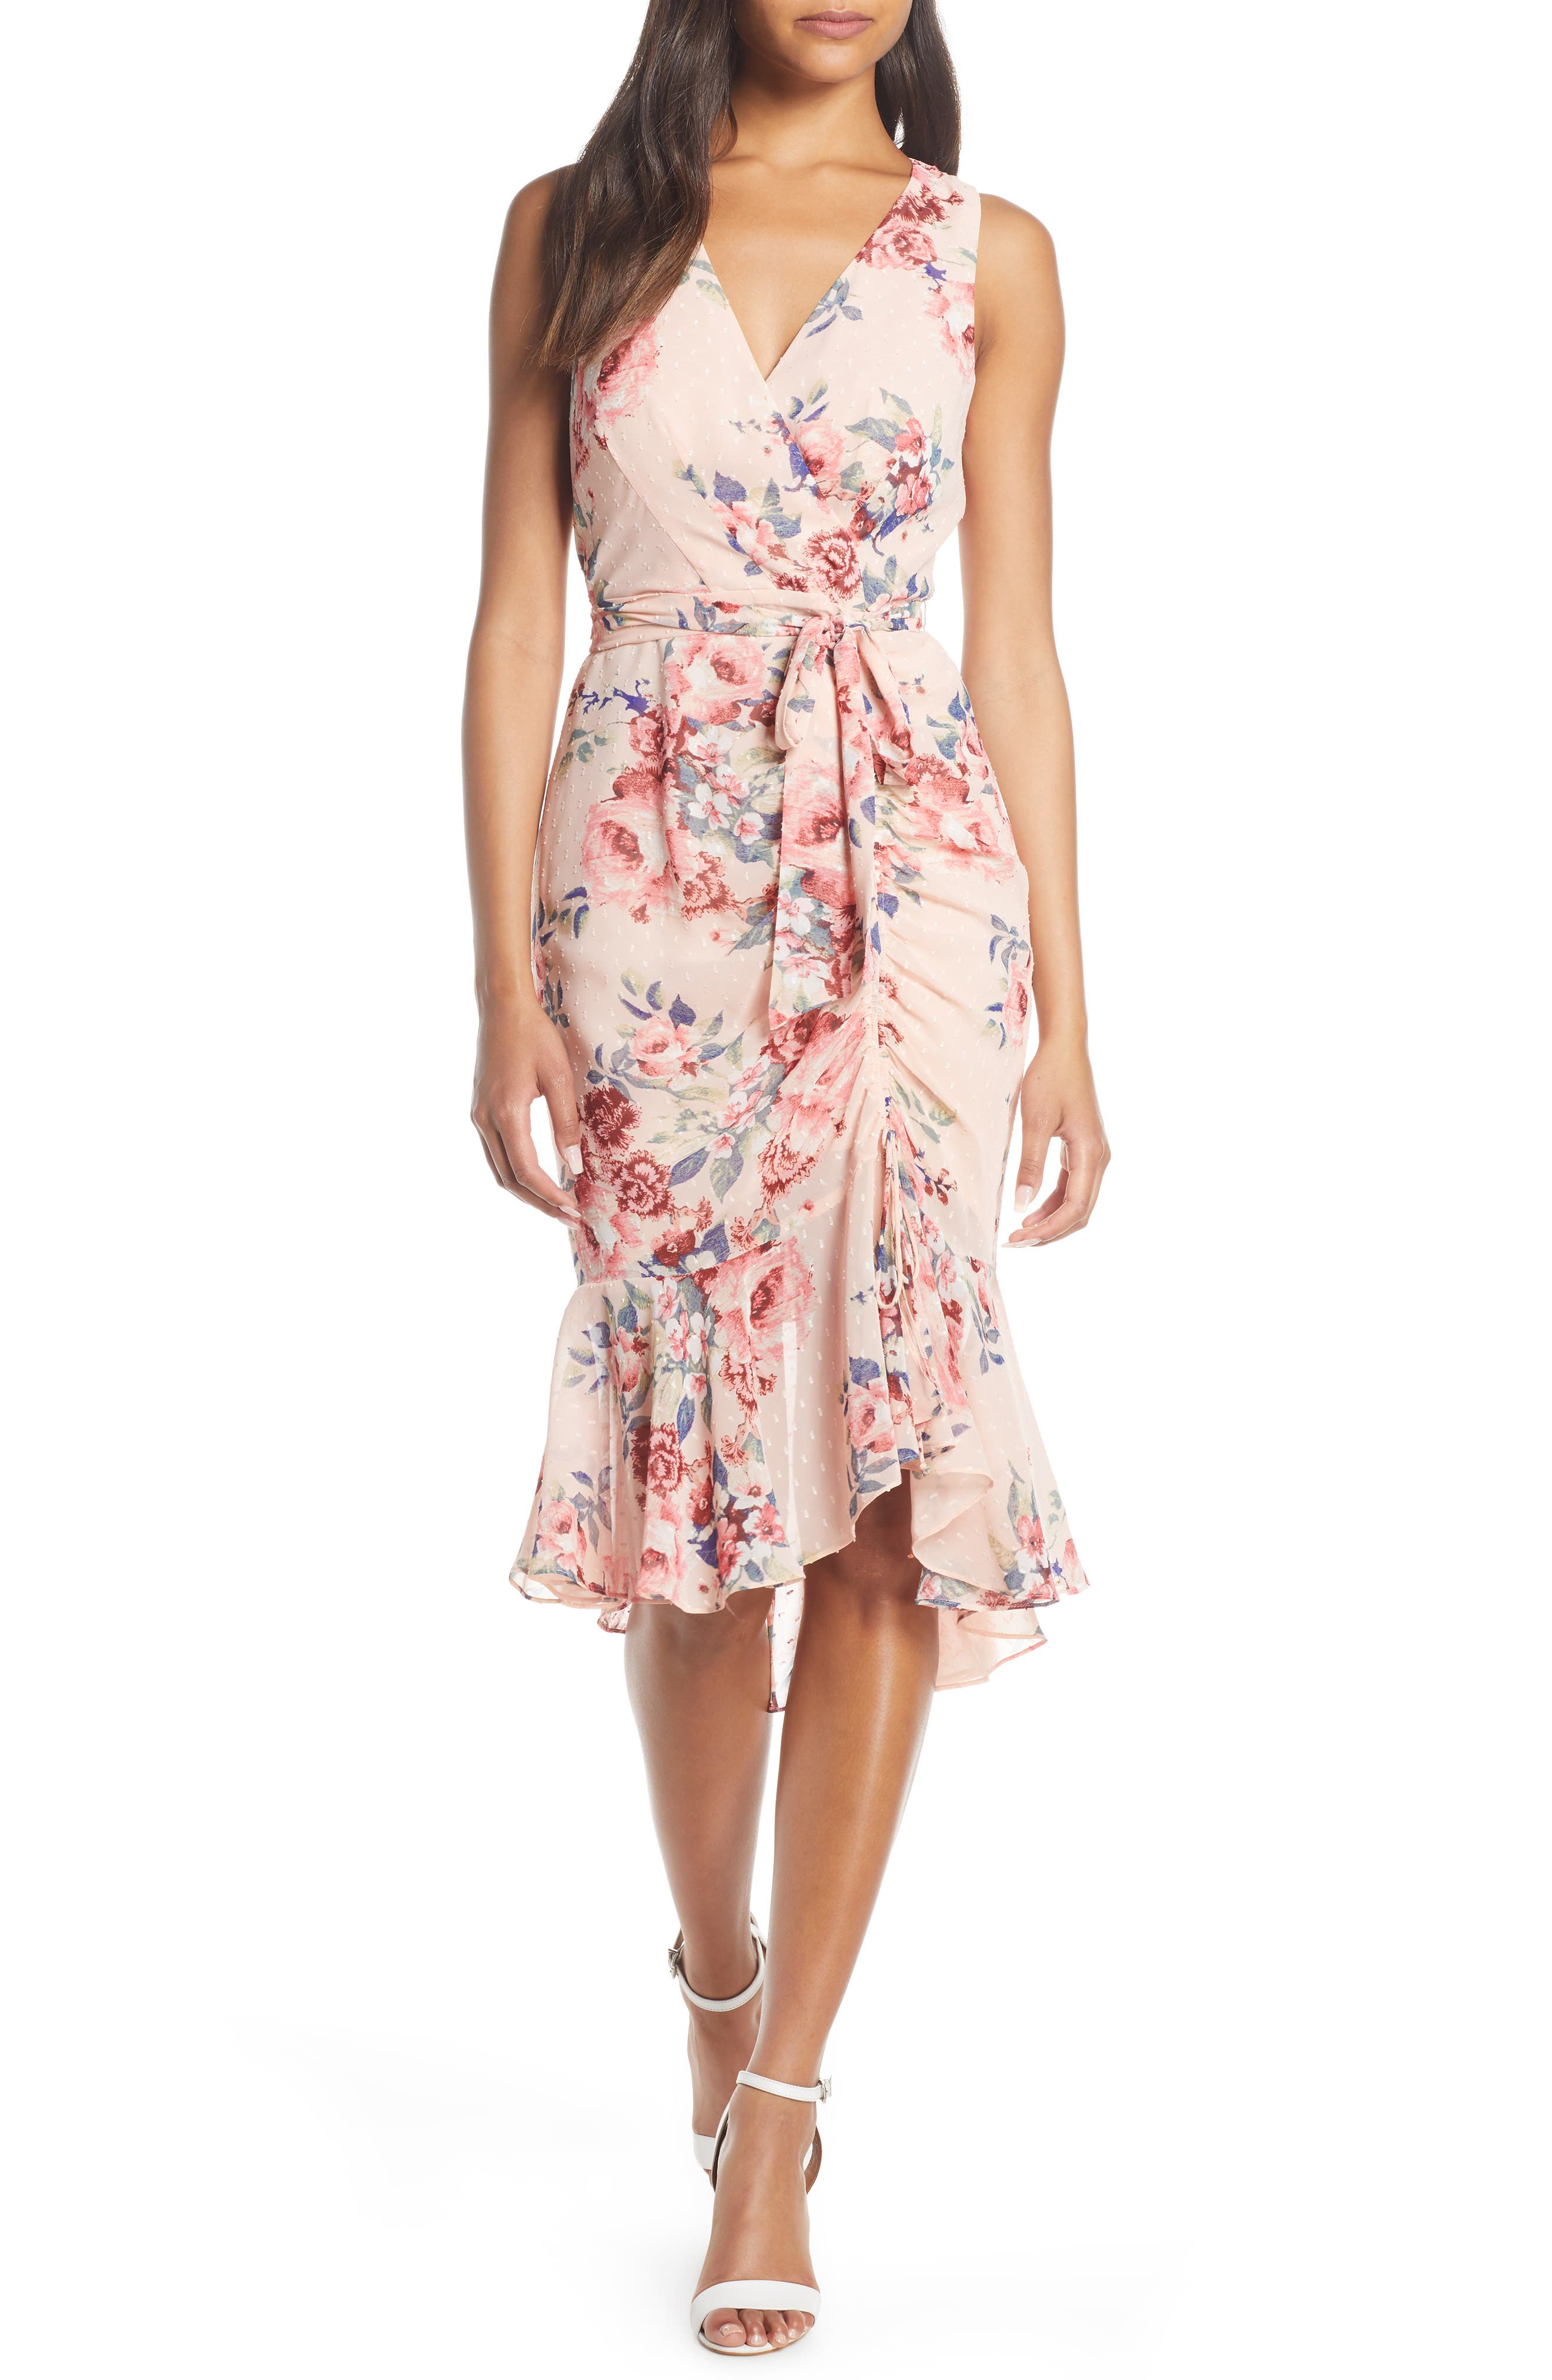 0176f771 Women's Dresses New Arrivals: Clothing, Shoes & Beauty | Nordstrom